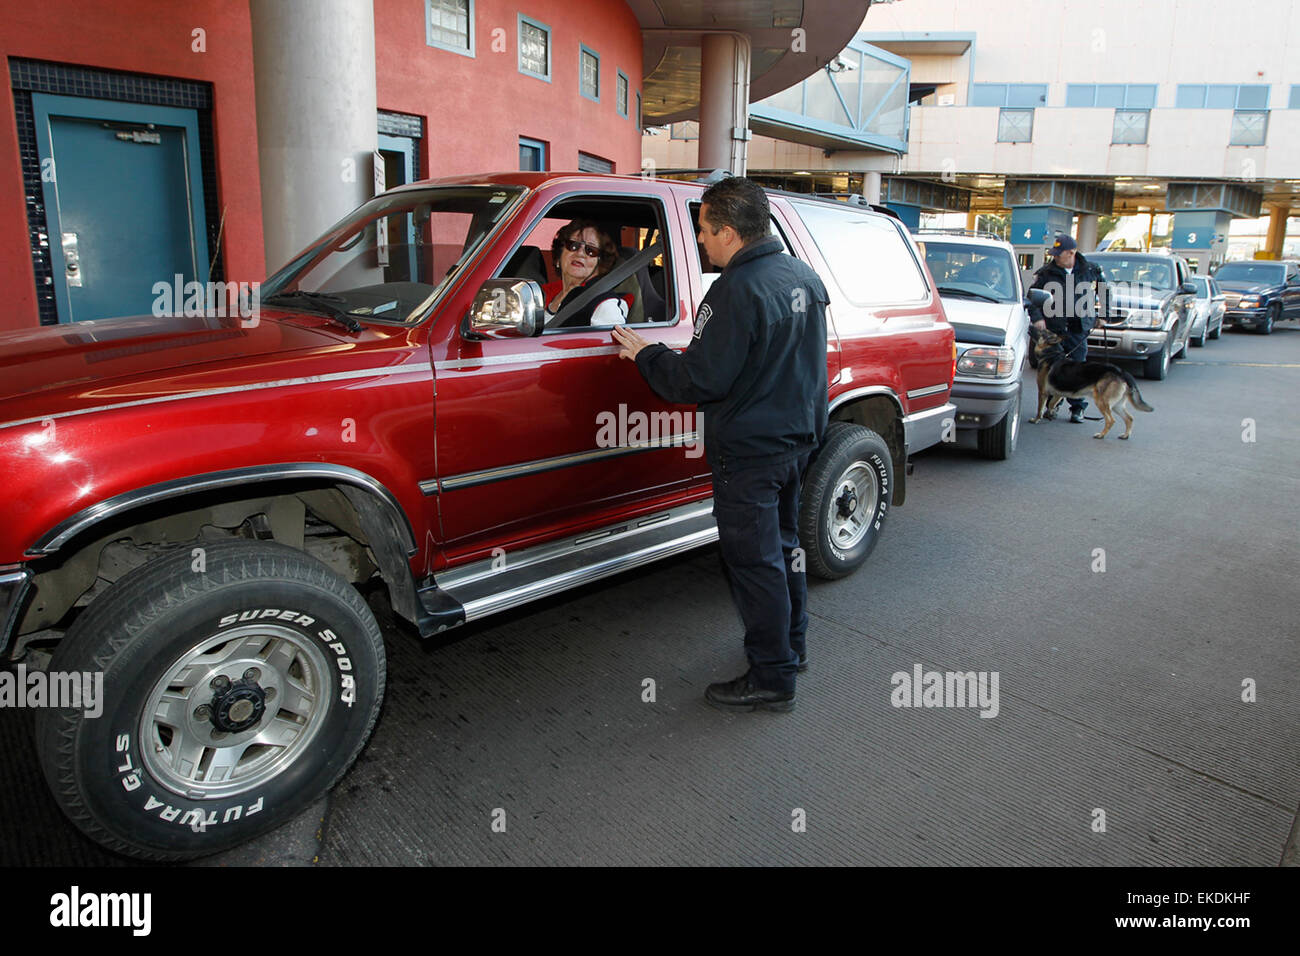 012611: Nogales, AZ - CBP Officers conduct vehicle inspections and document checks at the United States/Mexico port - Stock Image